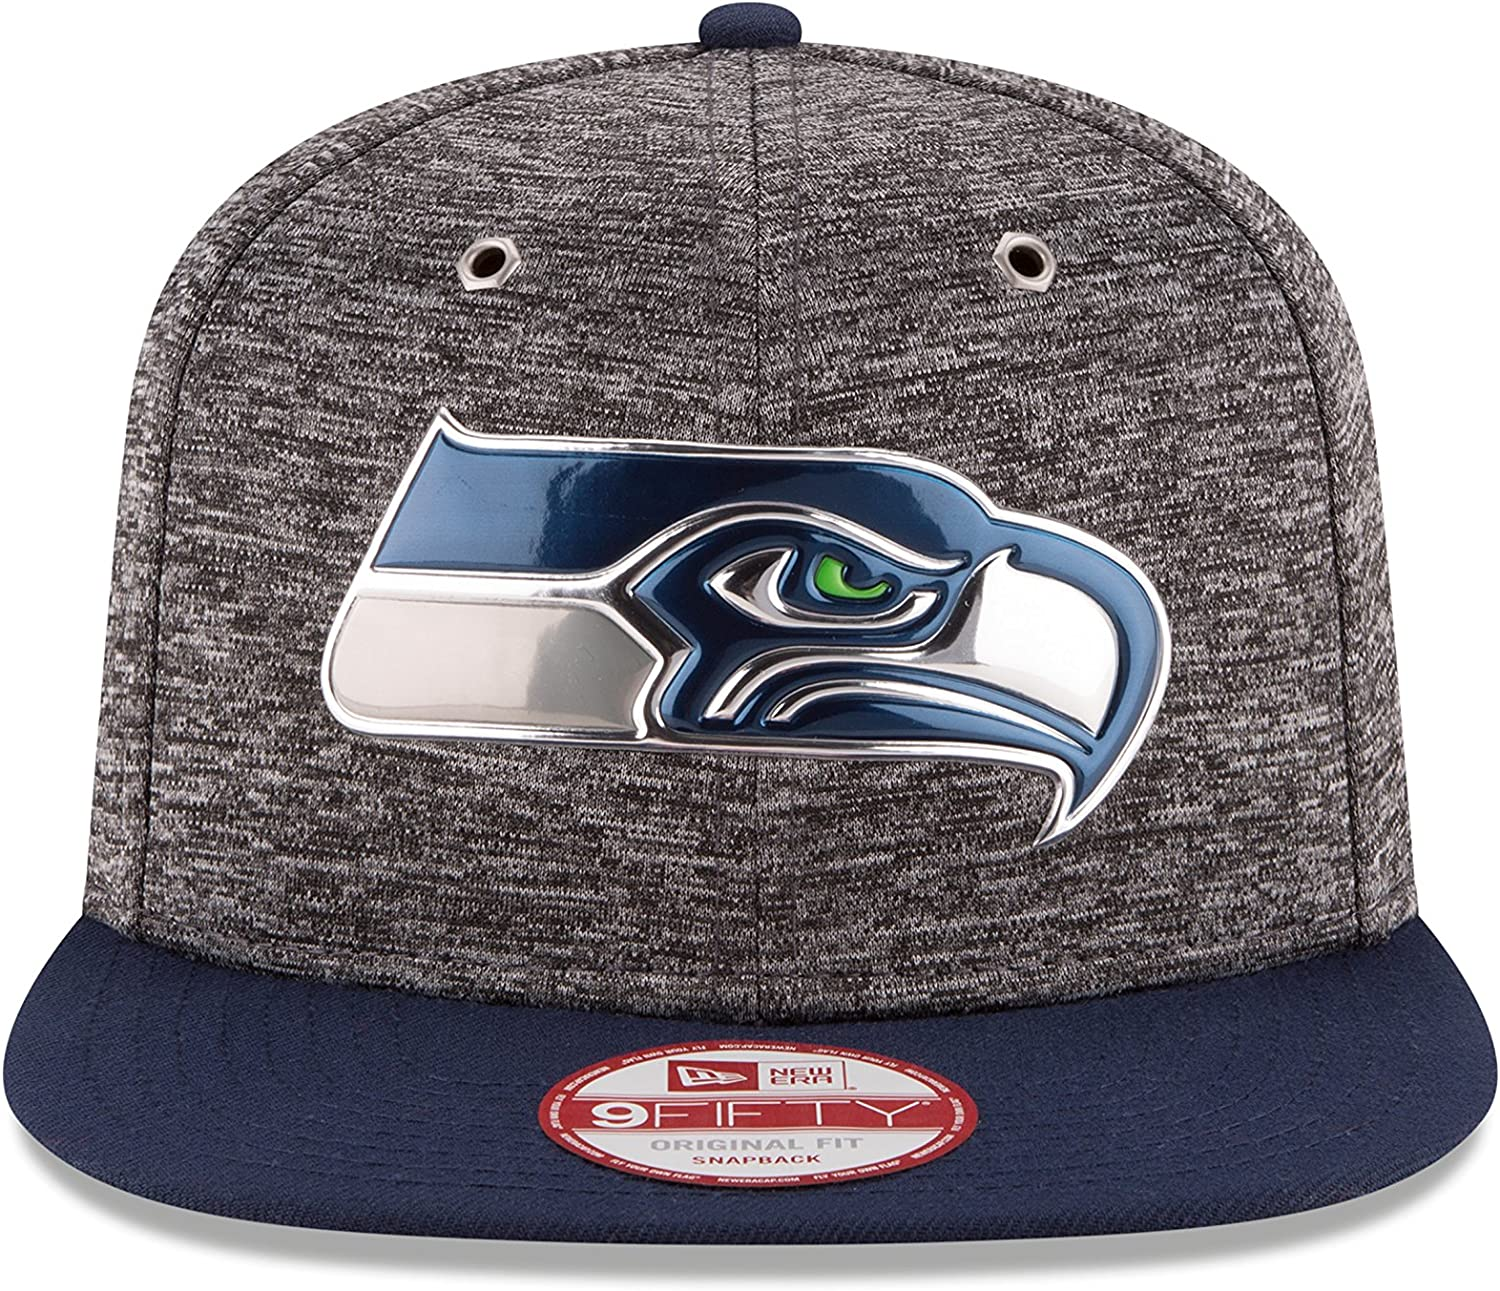 New Era NFL SEATTLE SEAHAWKS Authentic 2016 On Field Sideline Tech 39THIRTY Game Cap